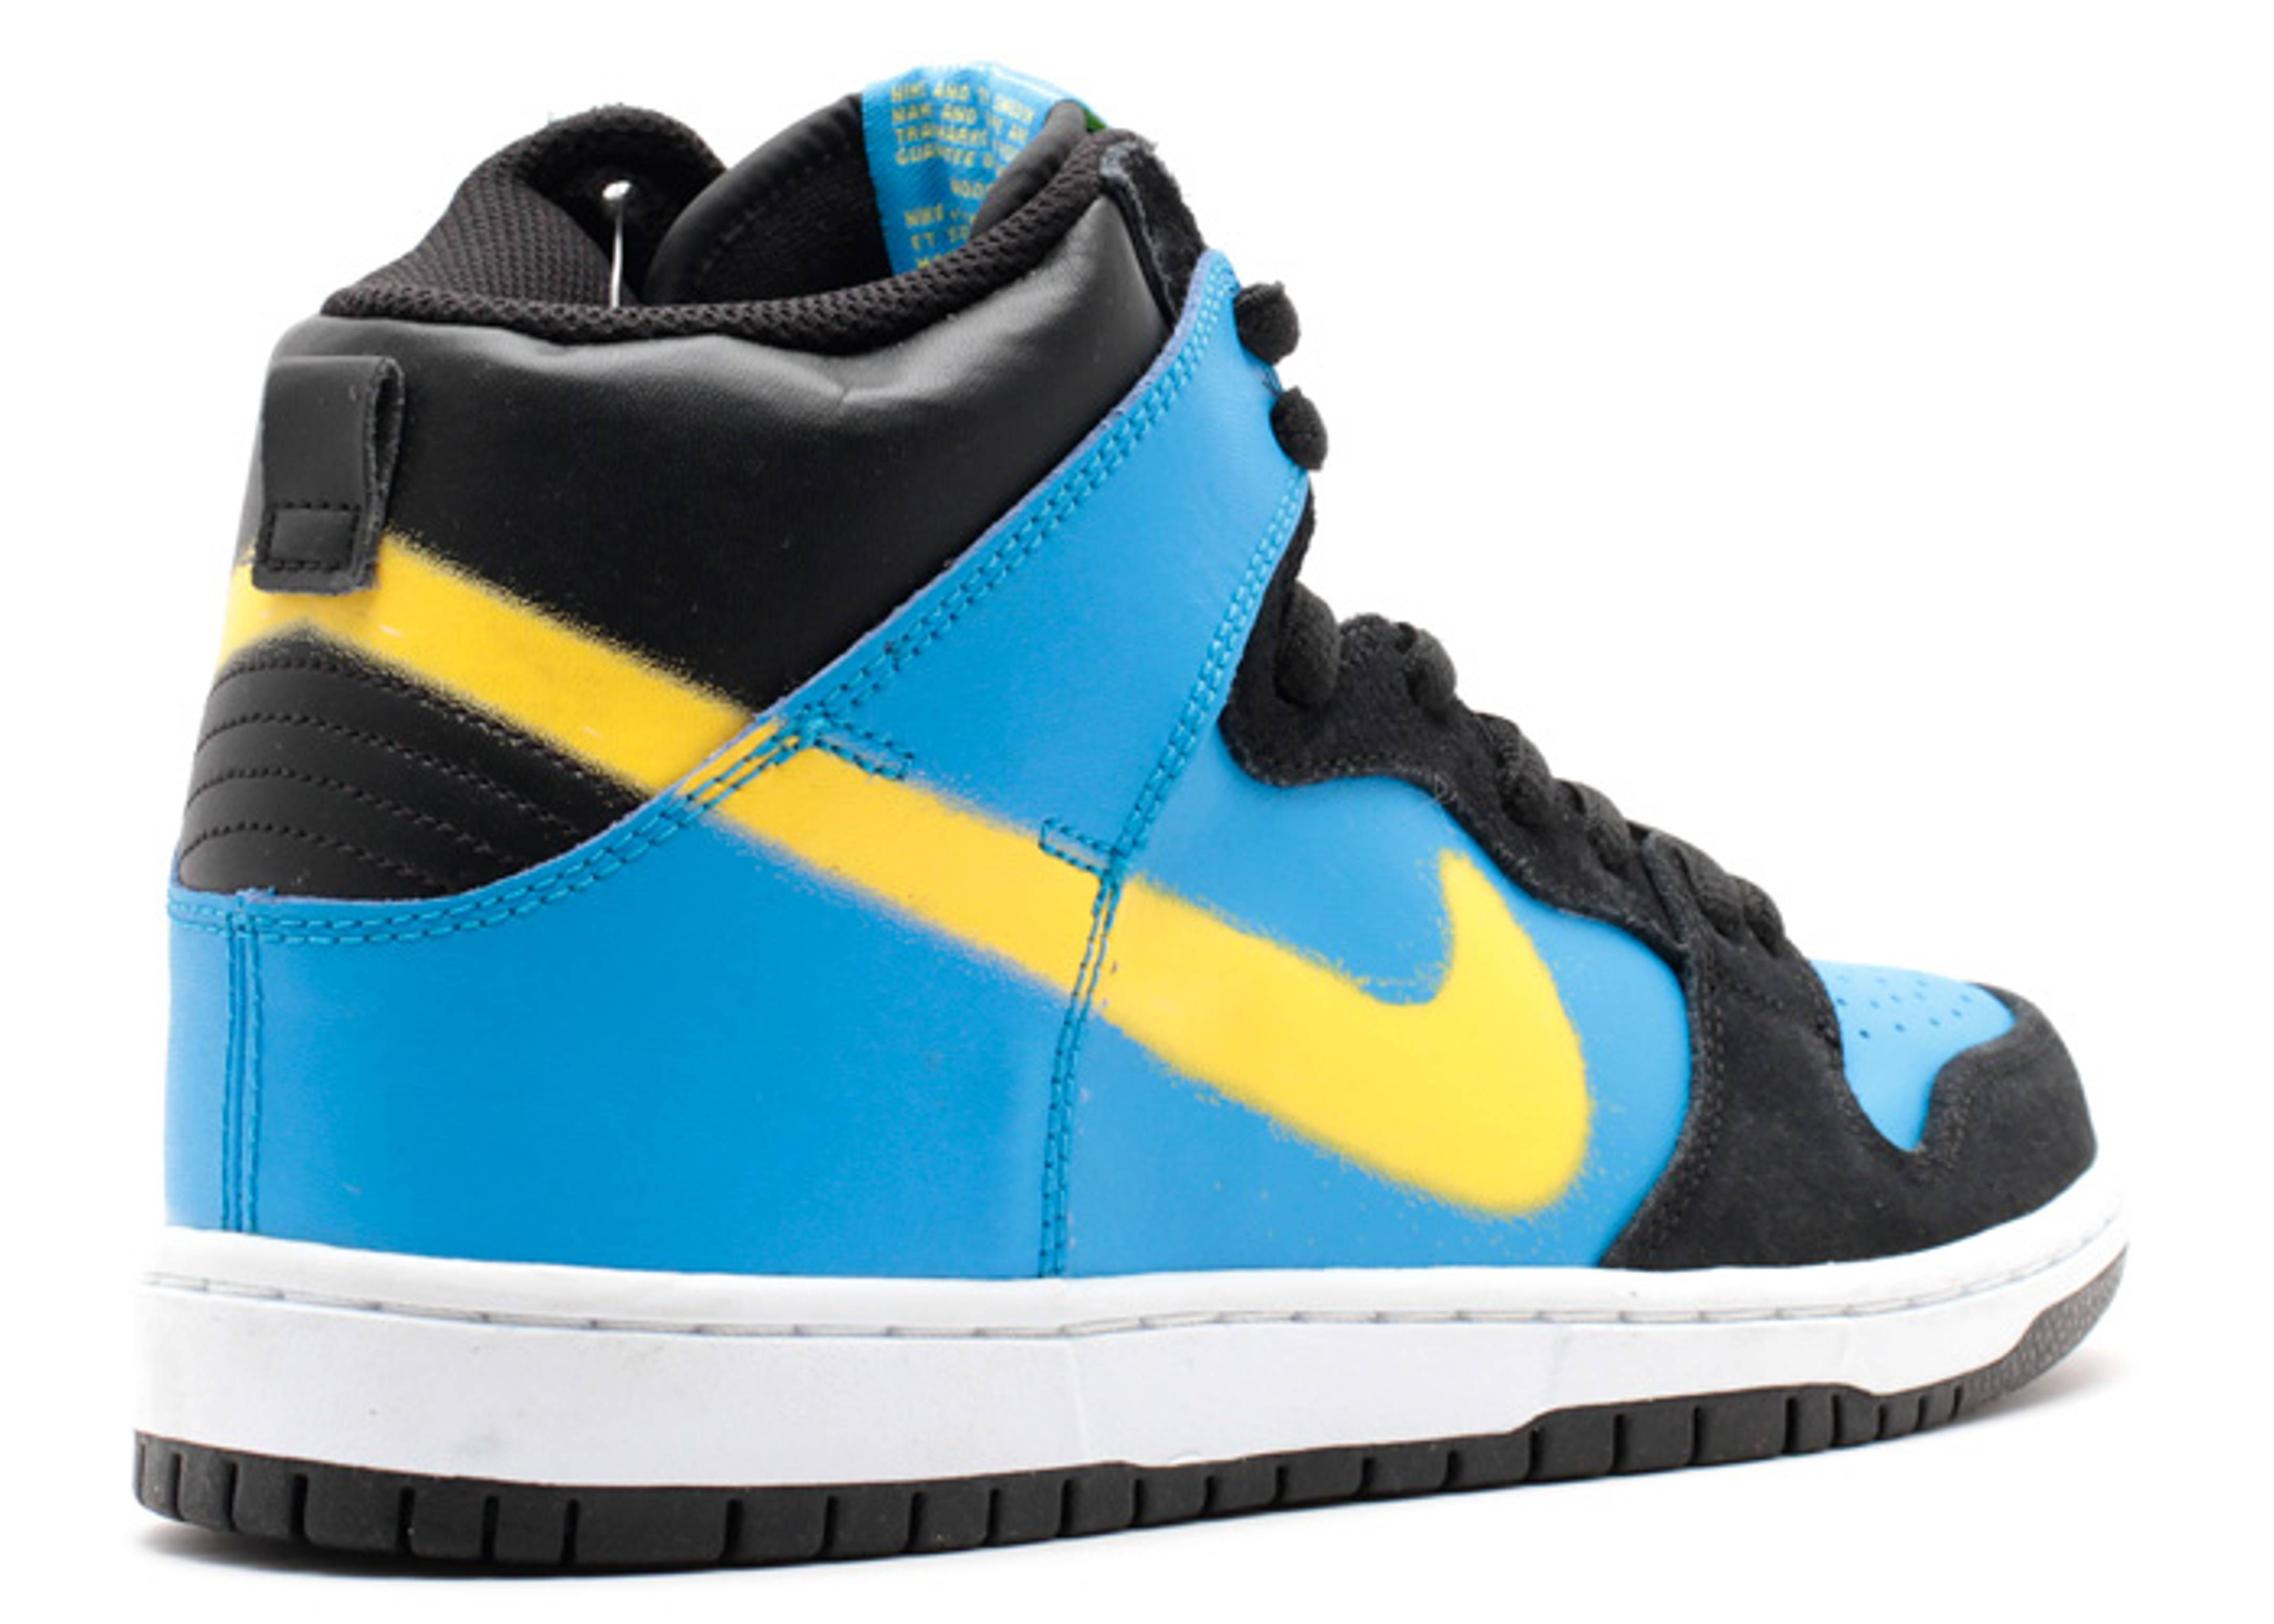 reputable site b03c9 d32da ... Air Force 1 Nike Dunk SB Low – Ms. Pacman ... dunk high sb mr pacman  sample . ...